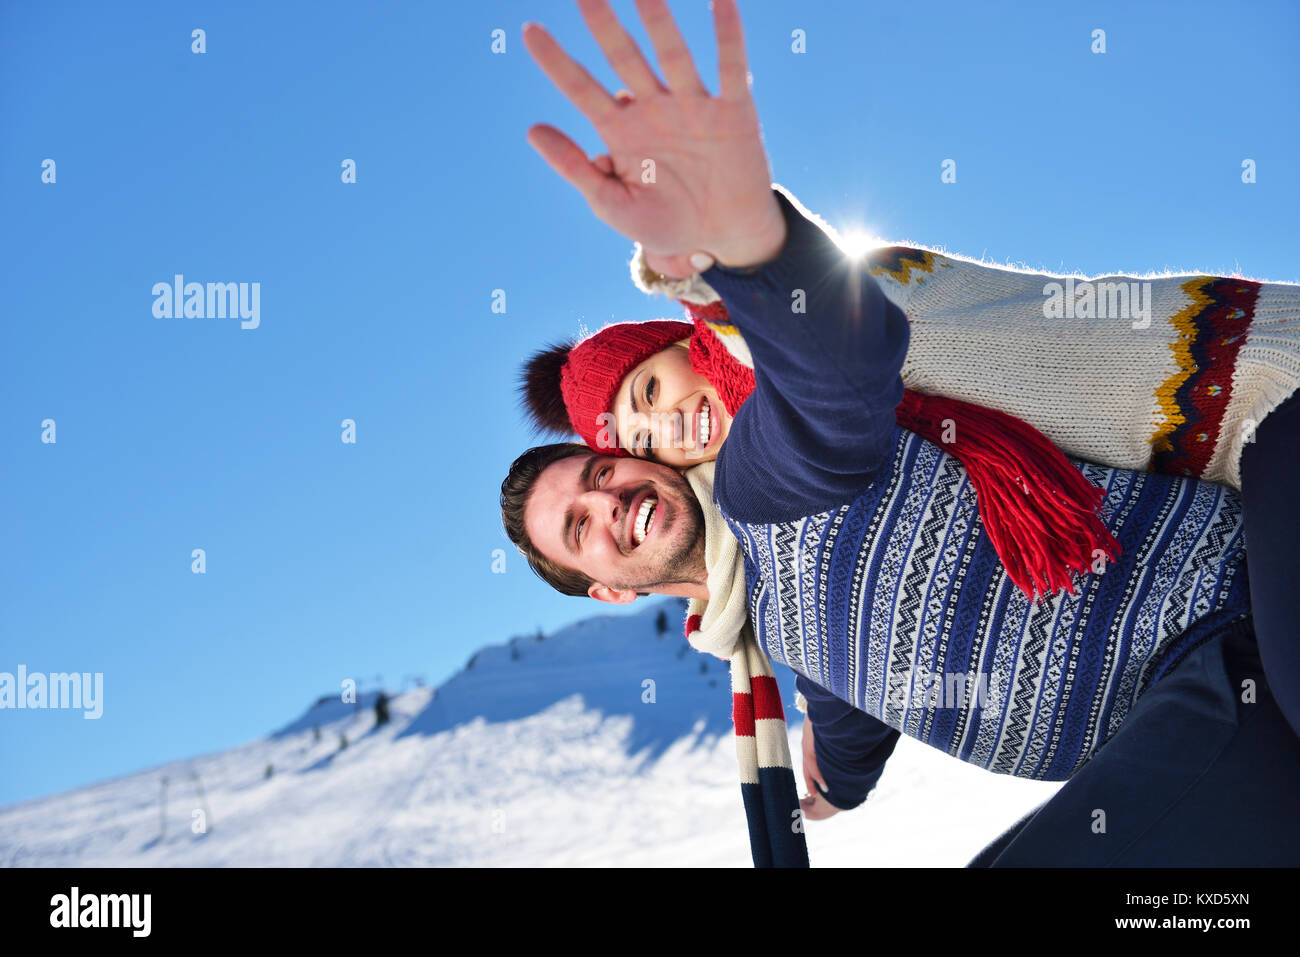 Loving couple playing together in snow outdoor. - Stock Image